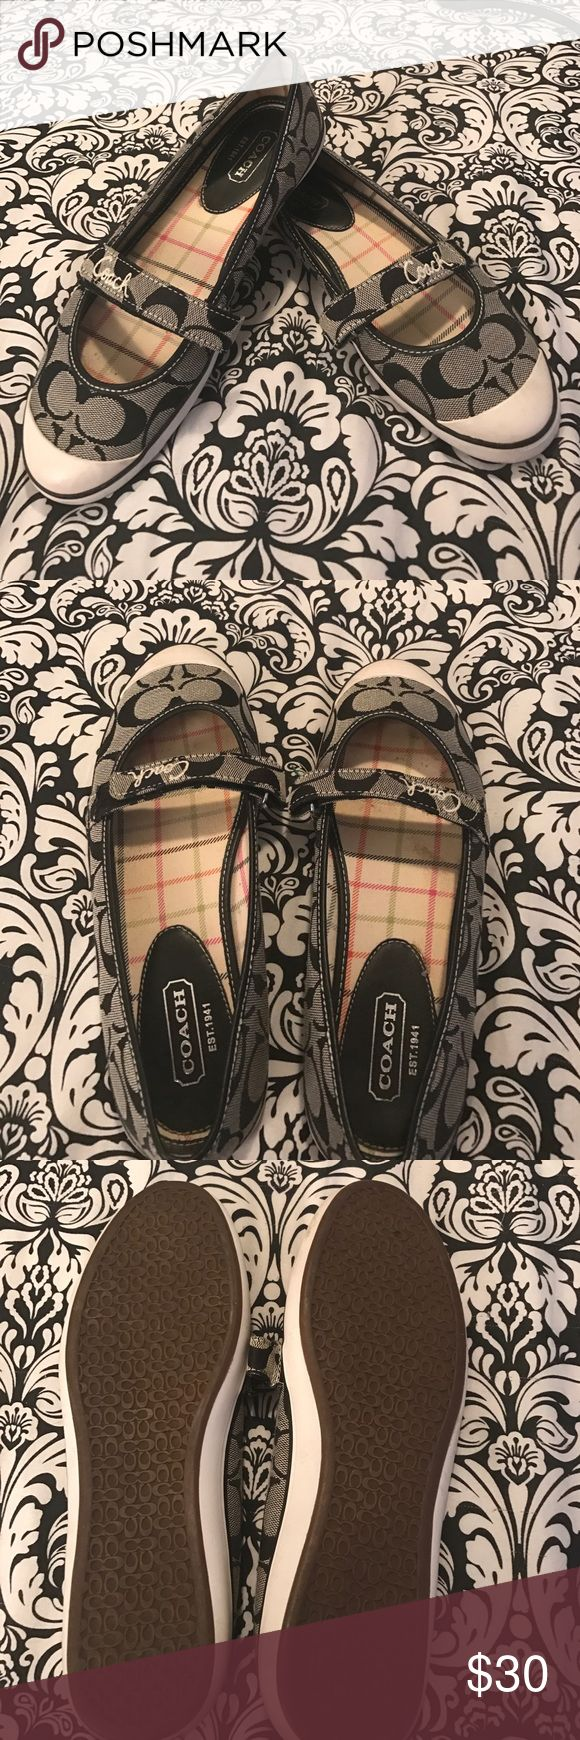 Coach signature fabric shoes Super cute Coach flats in black and grey Coach signature fabric. Some signs of wear on the rubber around the edges, shown in last pic. Coach Shoes Flats & Loafers